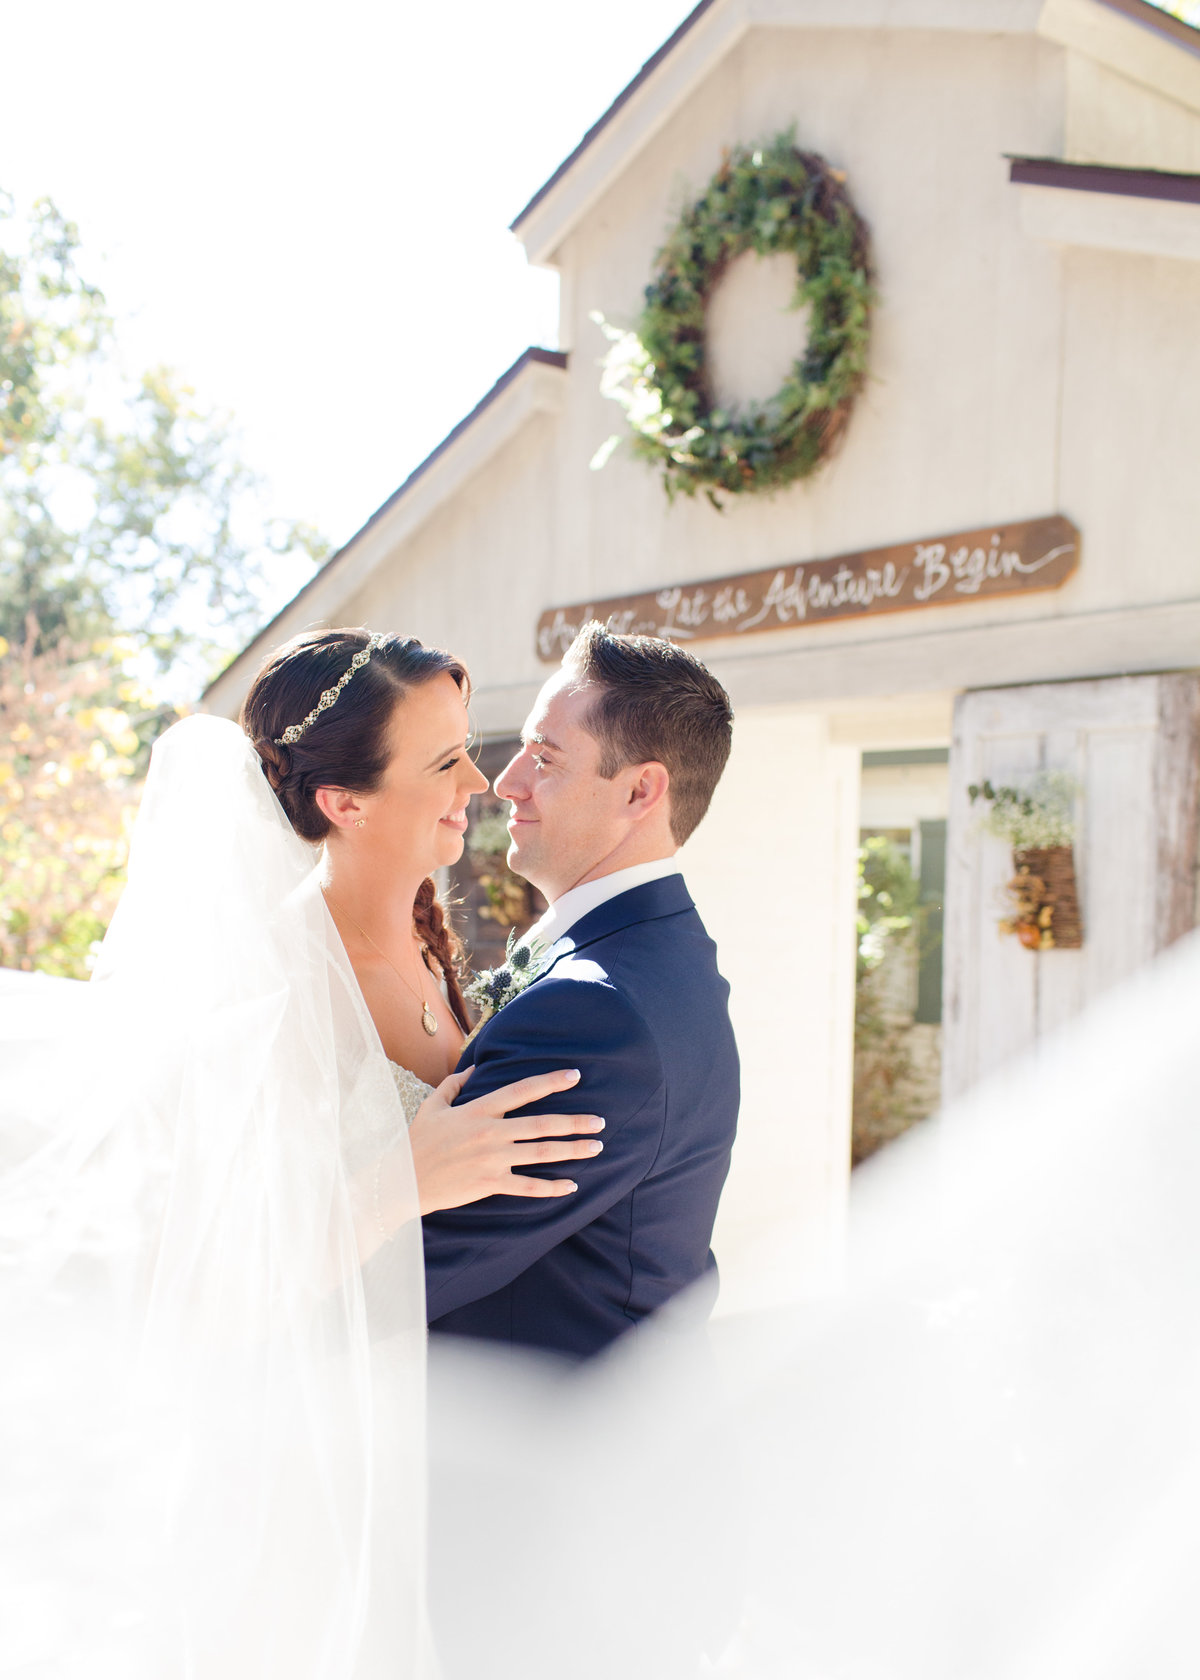 Katherine_beth_photography_San_diego_wedding_photographer_san_diego_wedding_the_homestead_at_wilshire_ranch_in_oak_glen_001